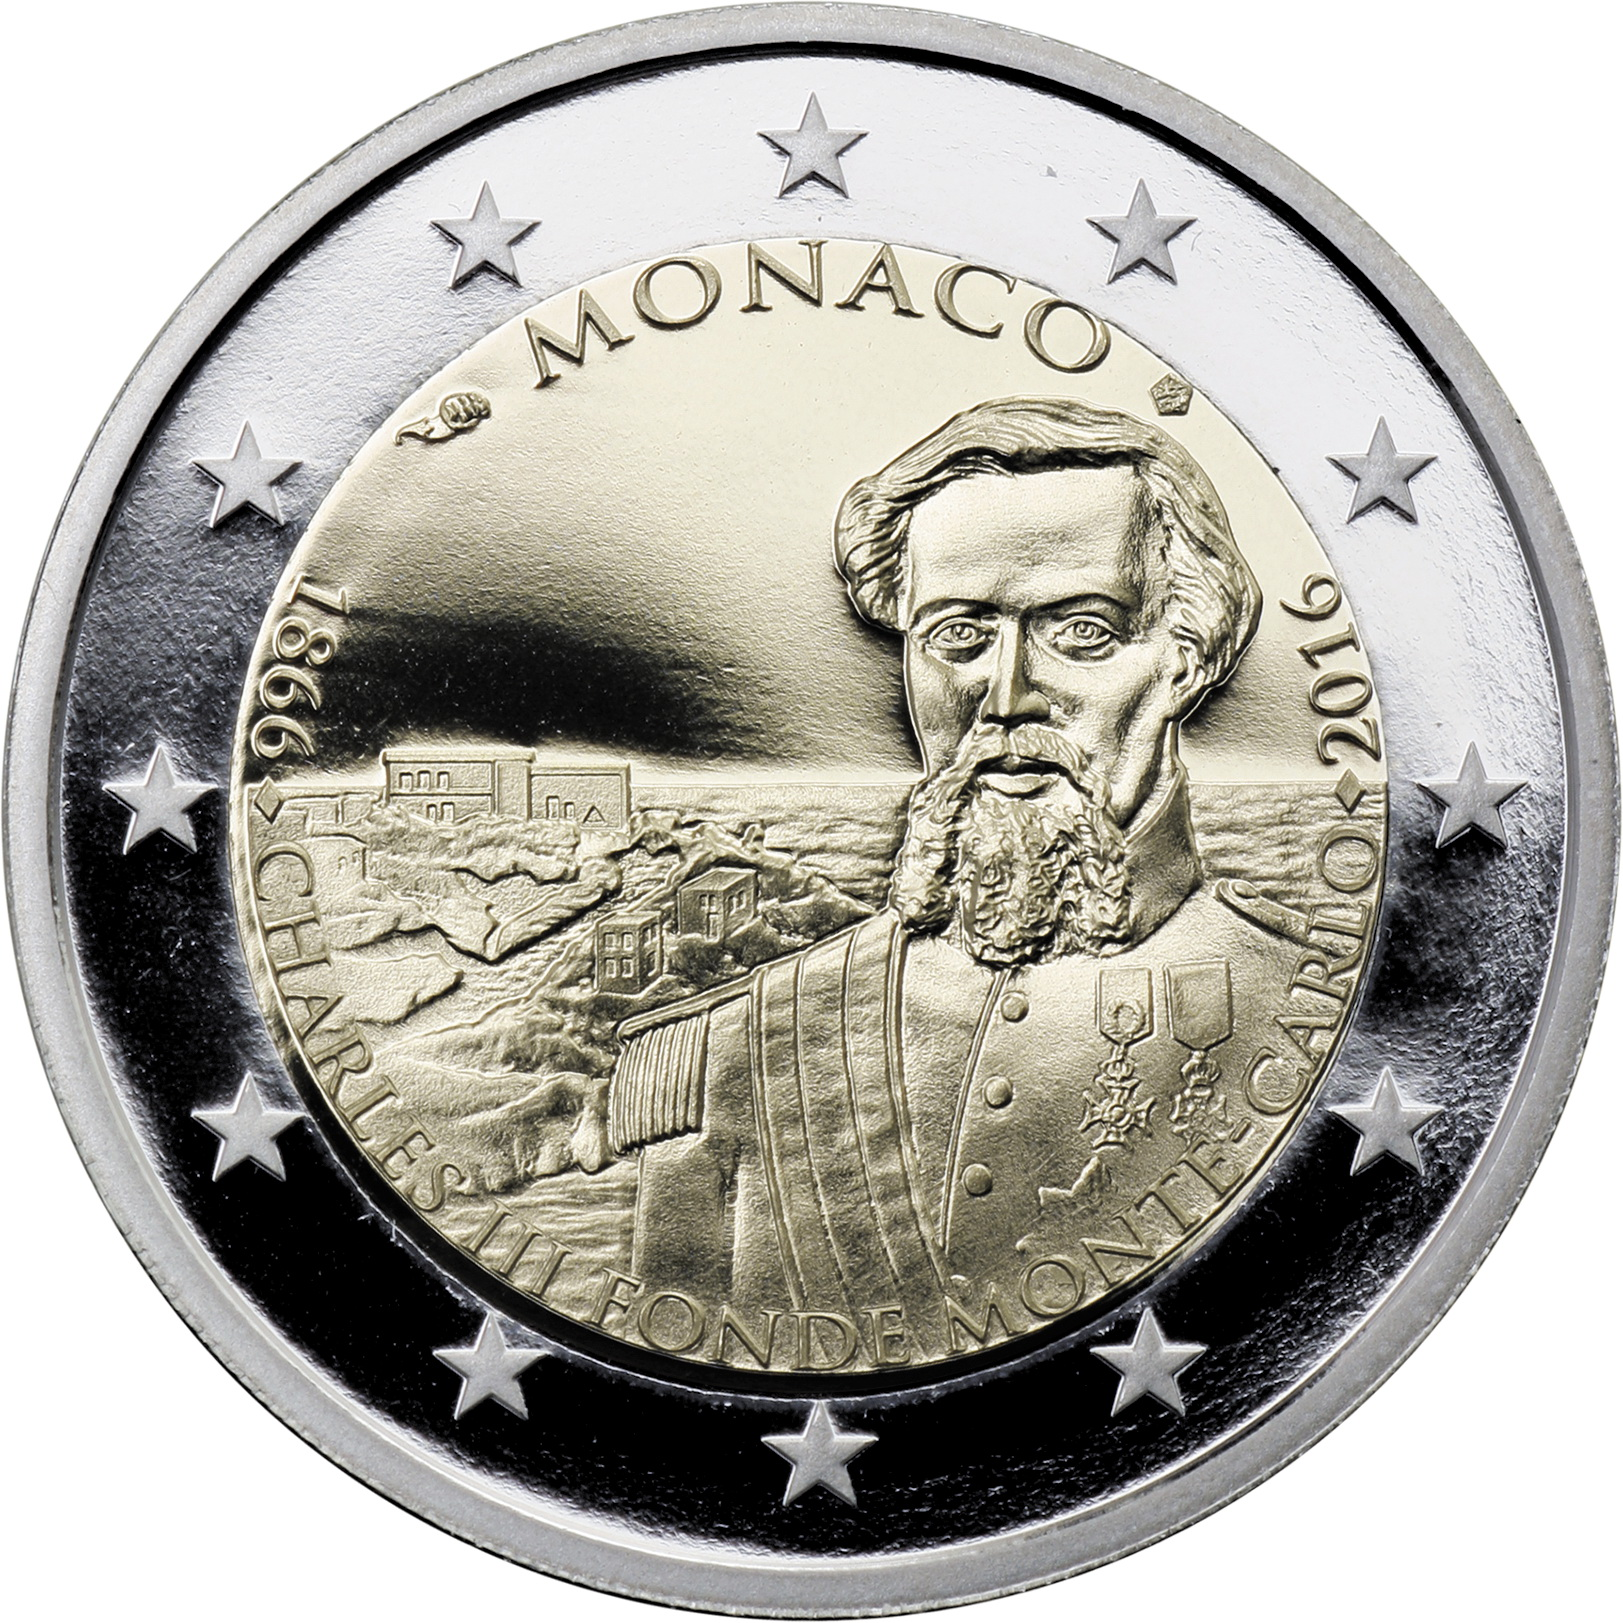 monaco 2 euro 2016 150 jahre monte carlo. Black Bedroom Furniture Sets. Home Design Ideas